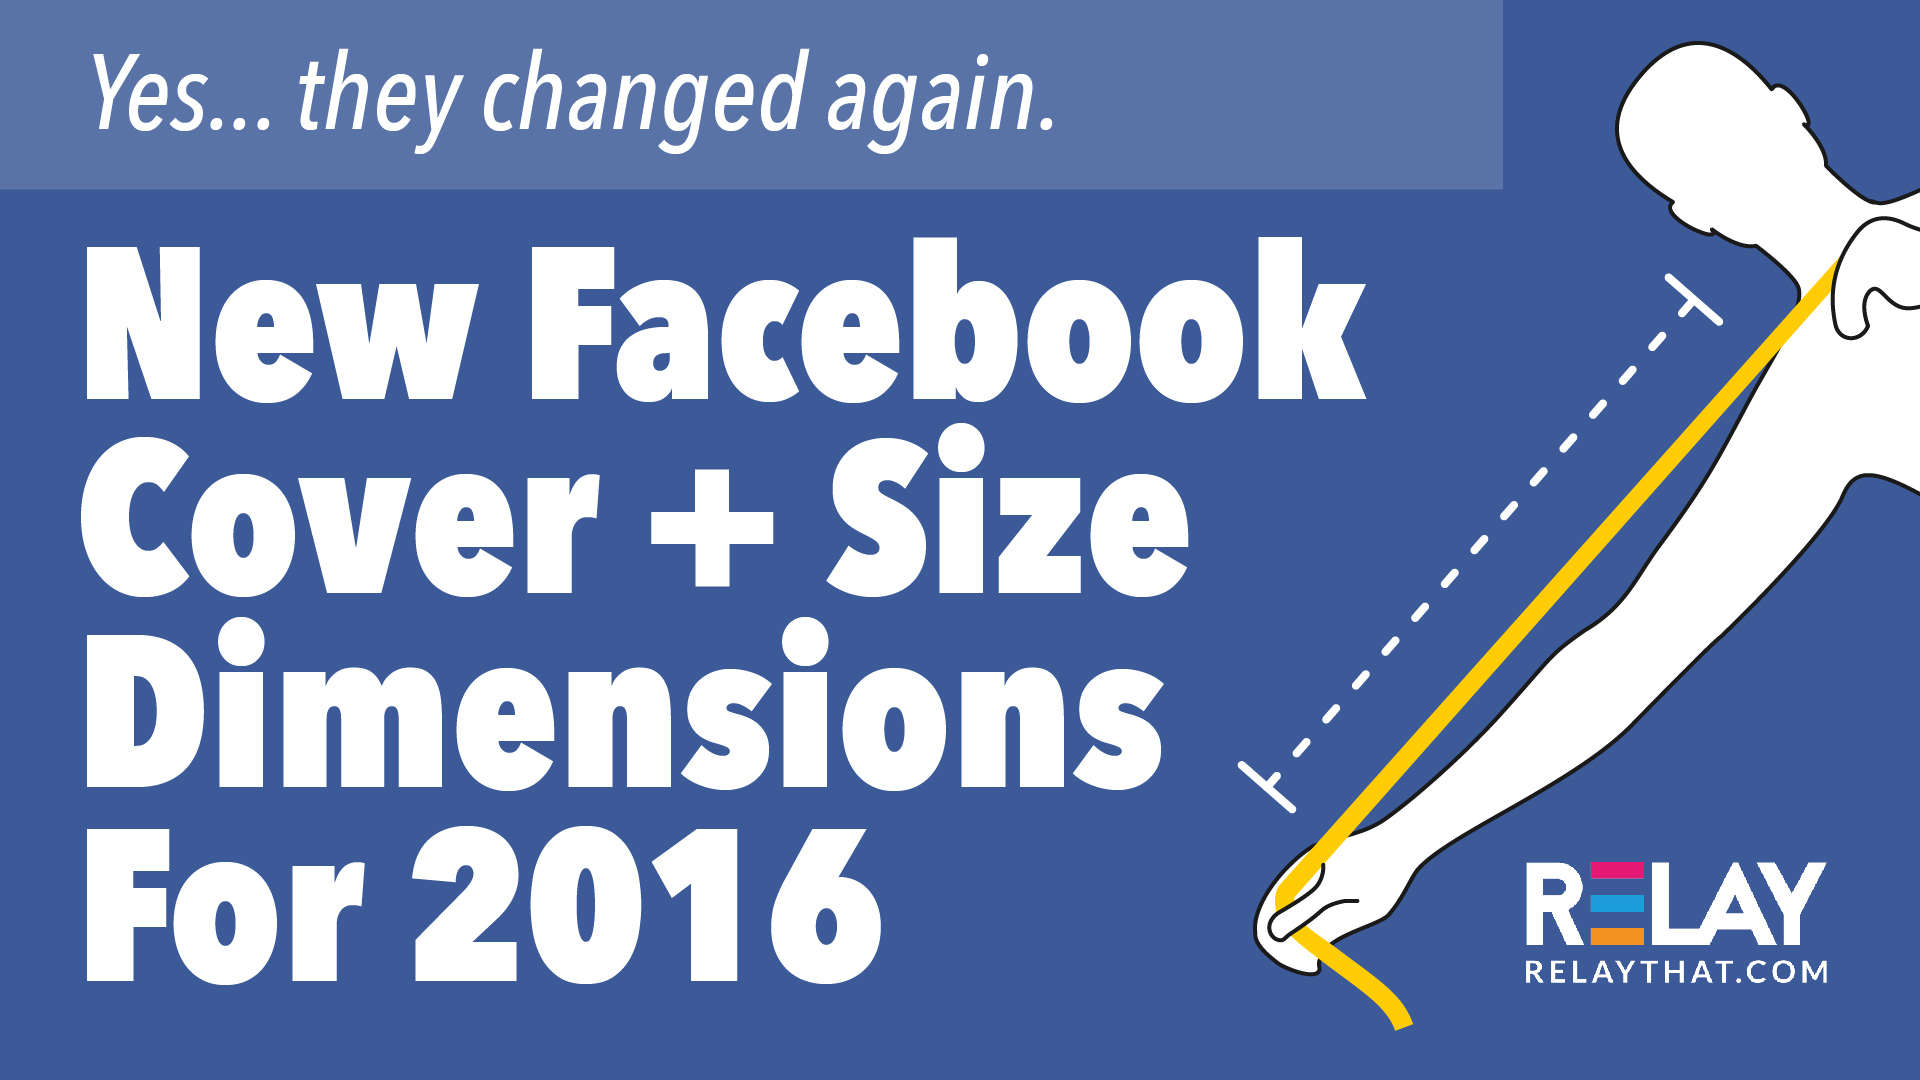 new facebook cover size dimensions for 2016